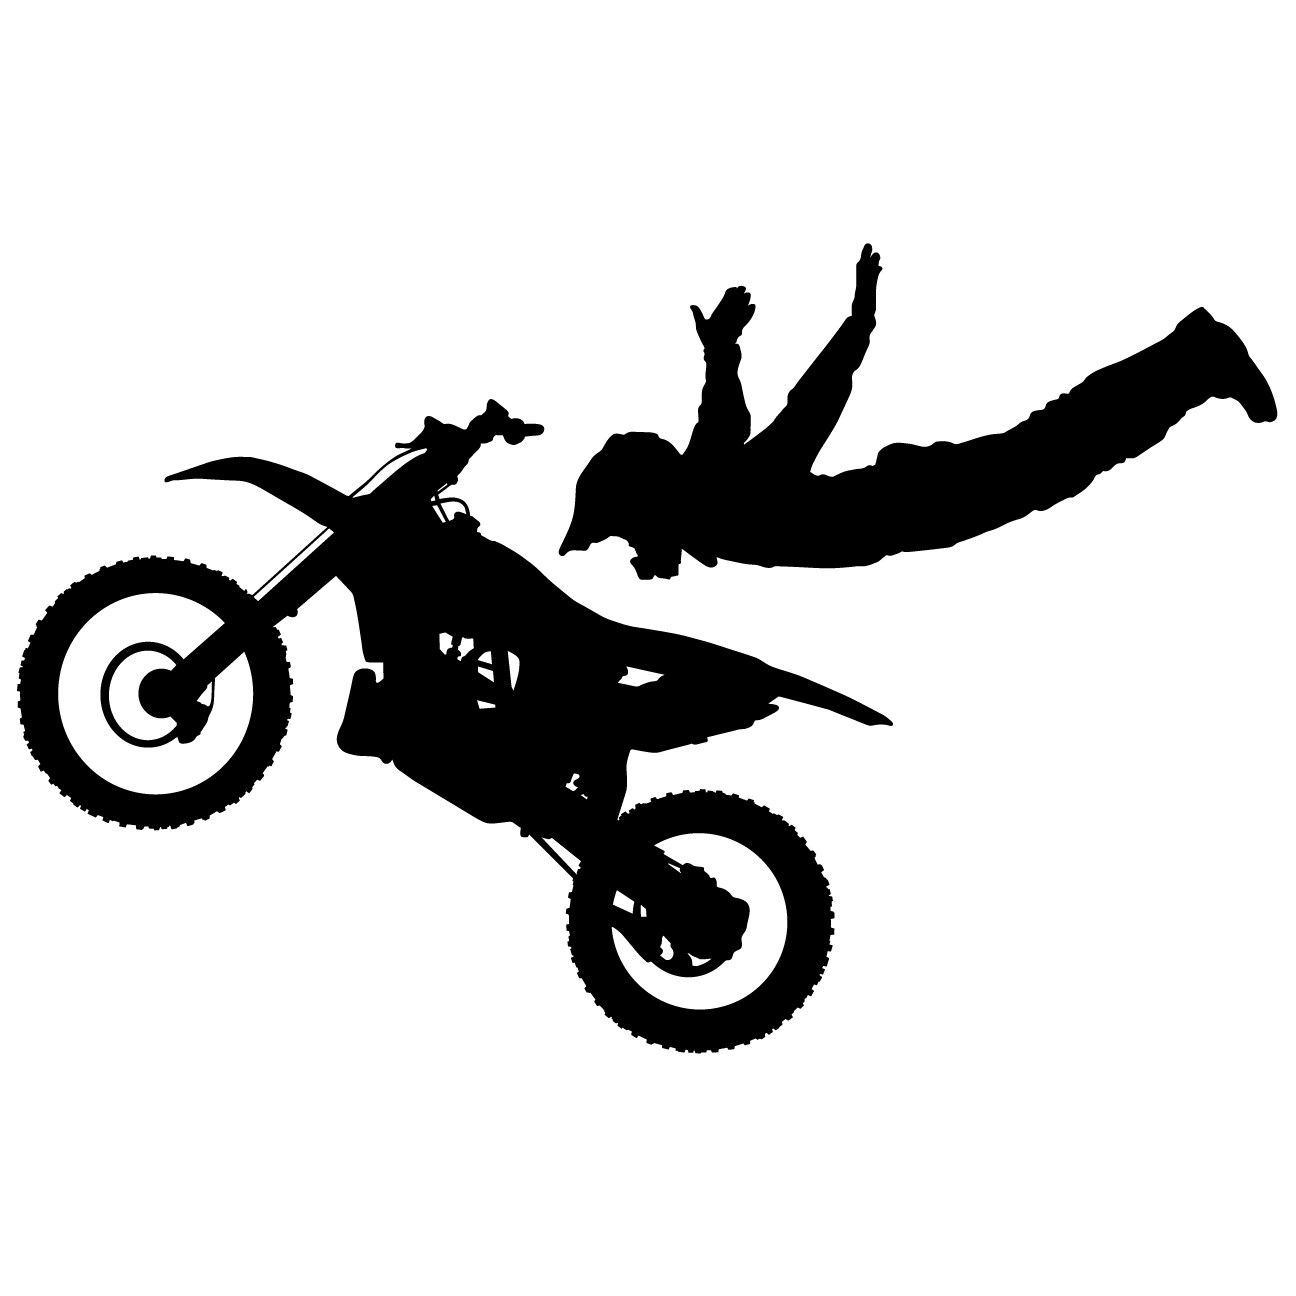 Motocross dirt bike wall decal sticker 7